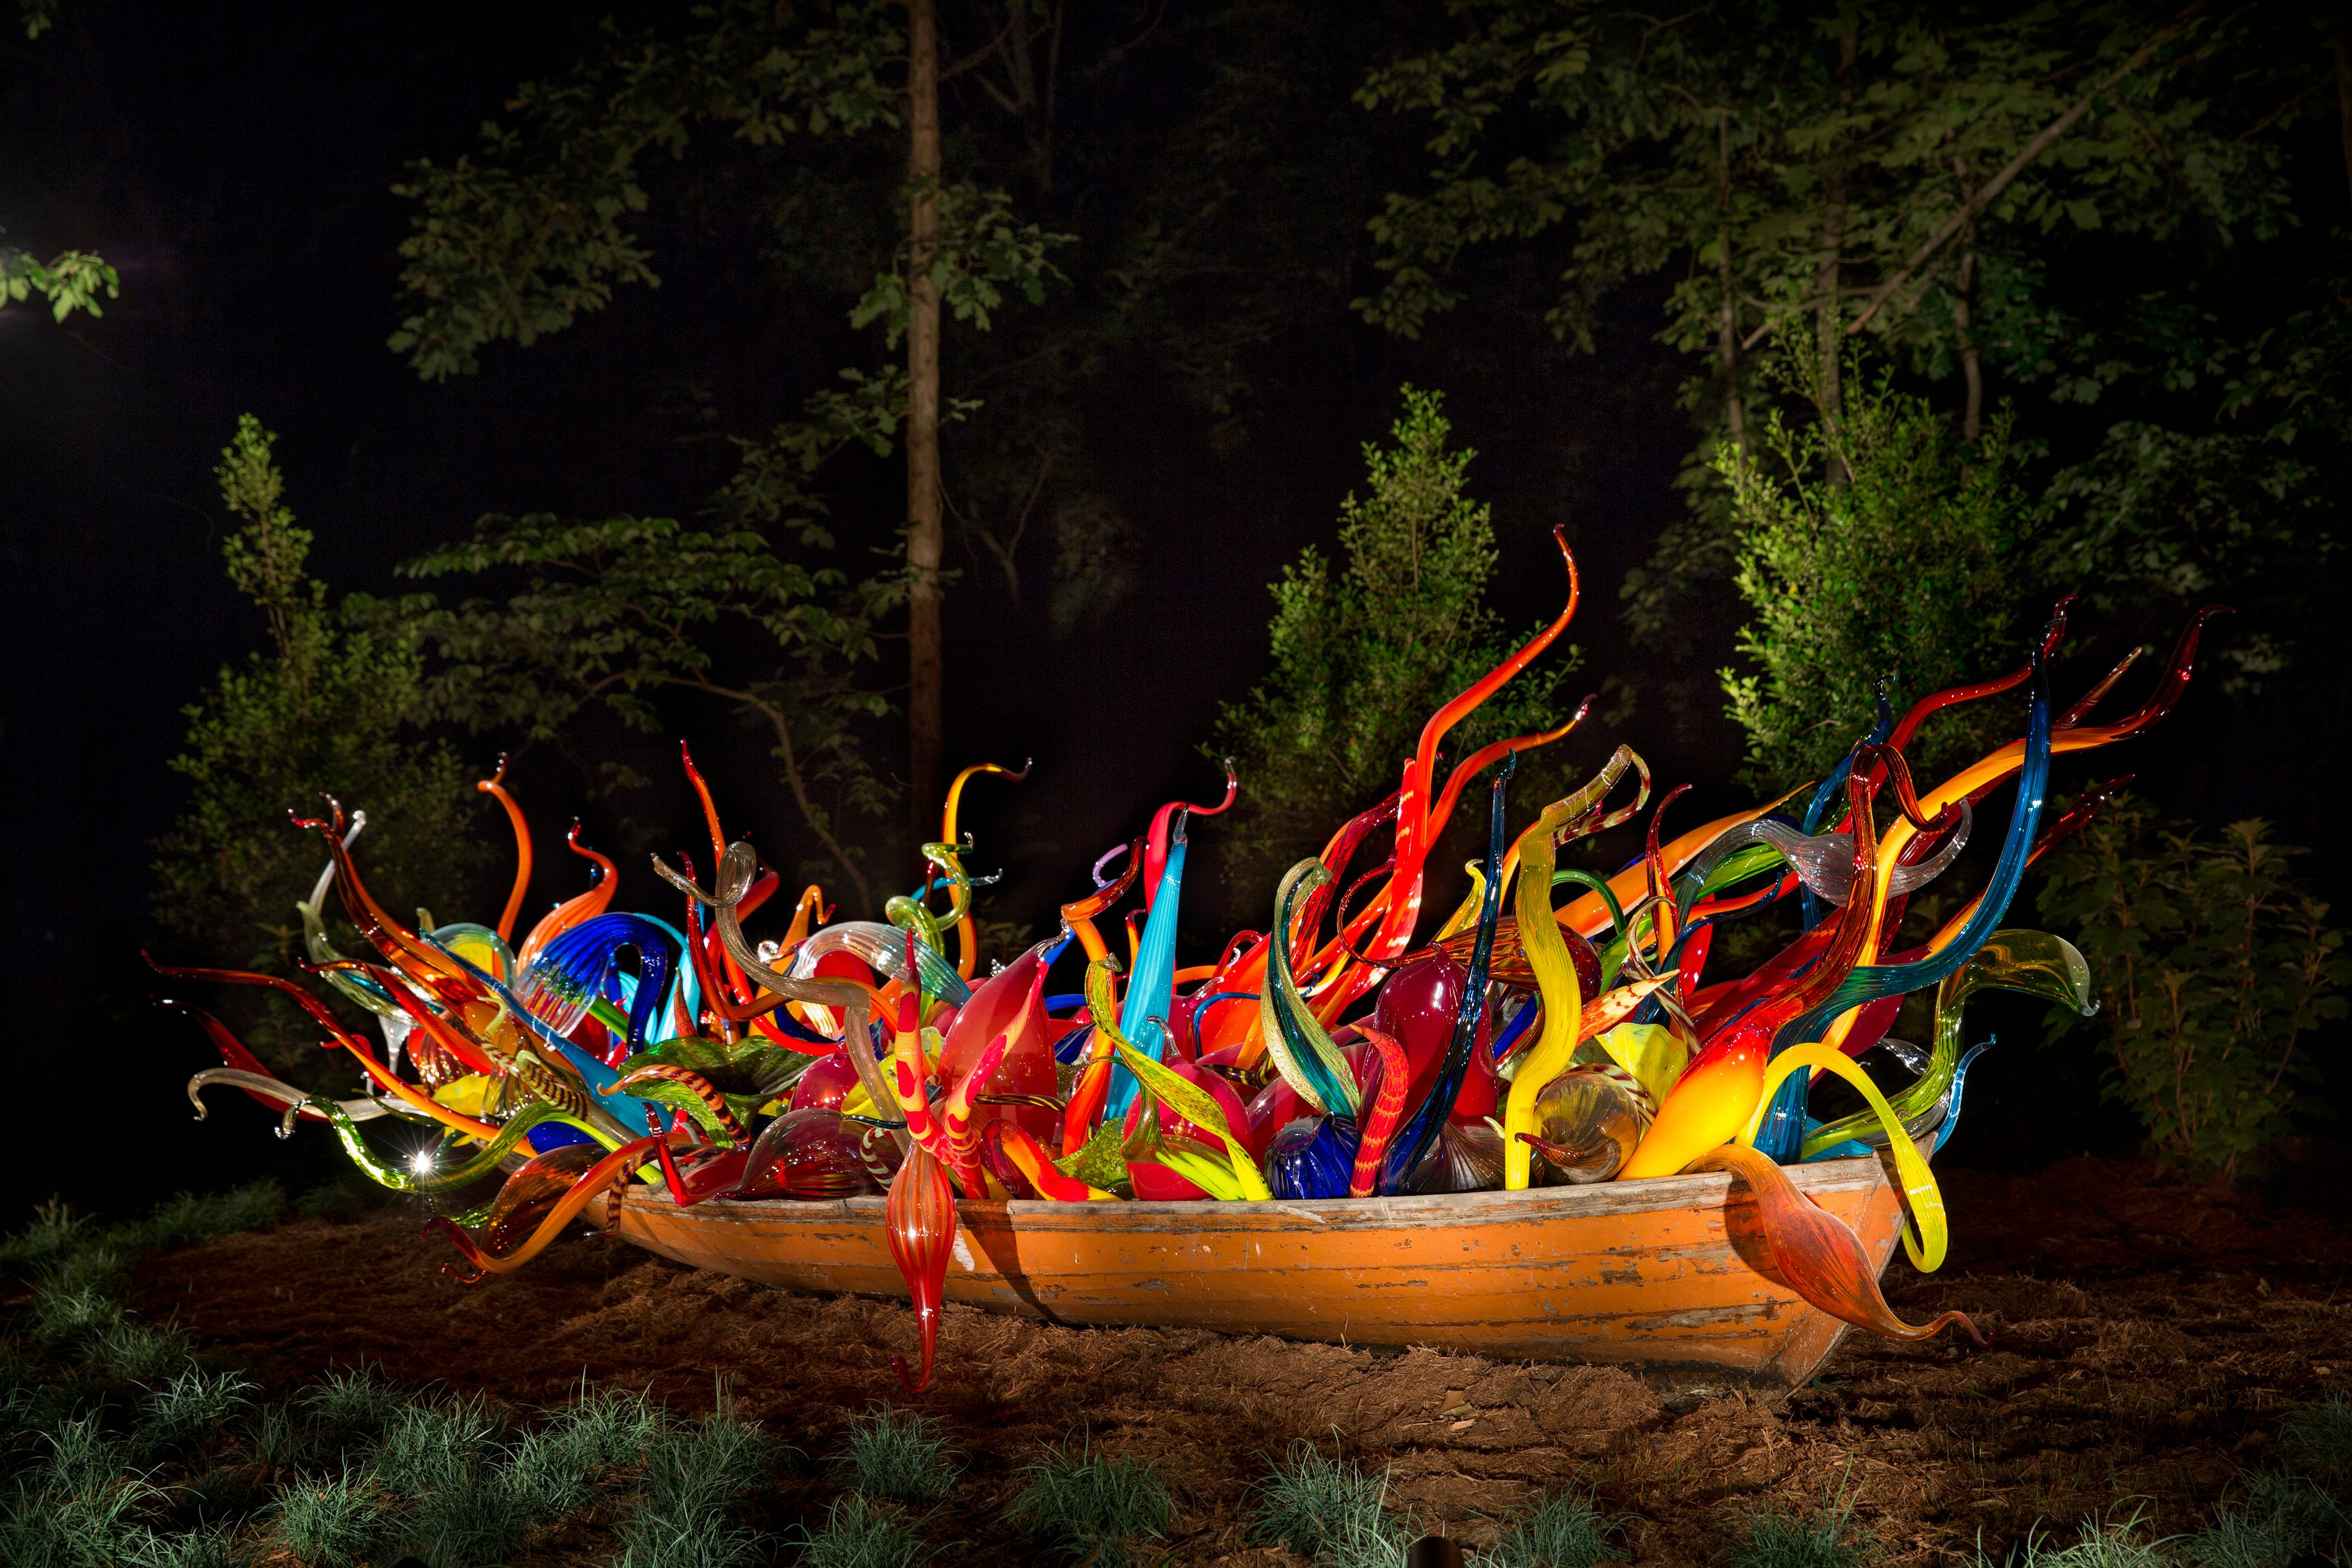 Fiori Boat by Dale Chihuly